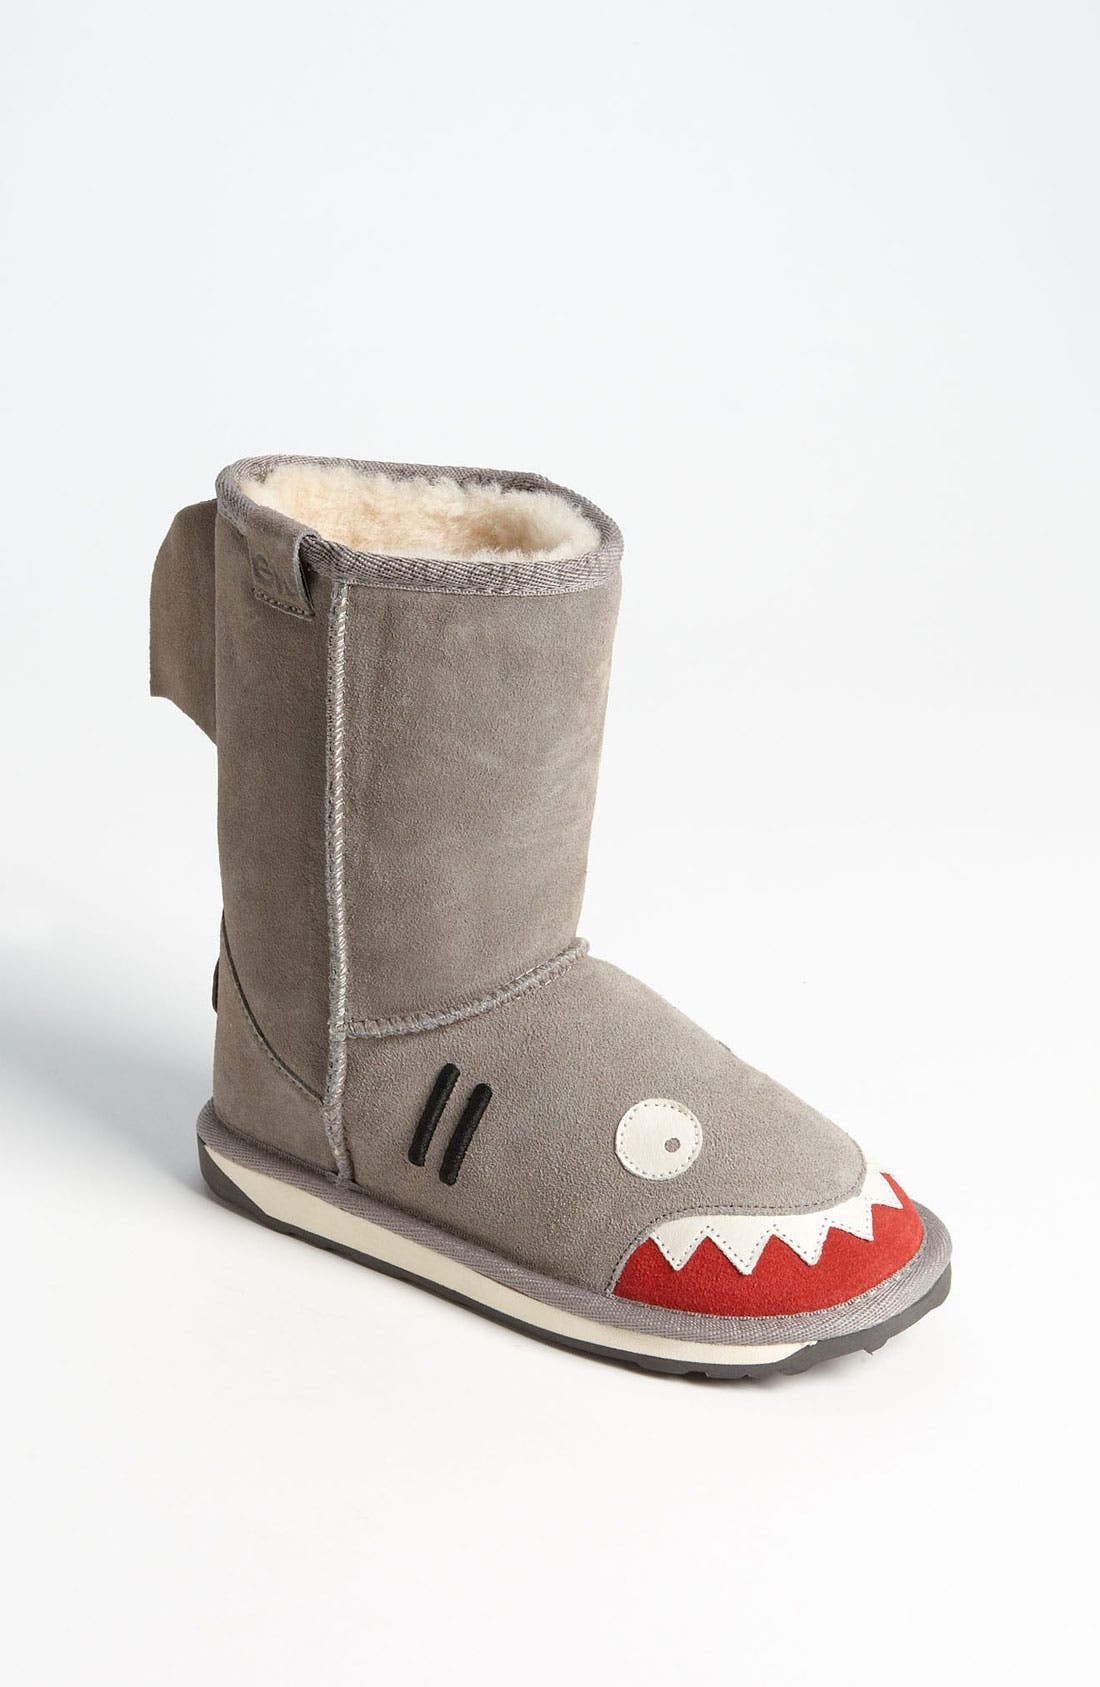 Main Image - EMU Australia 'Little Creatures - Shark' Boot (Toddler, Little Kid & Big Kid)